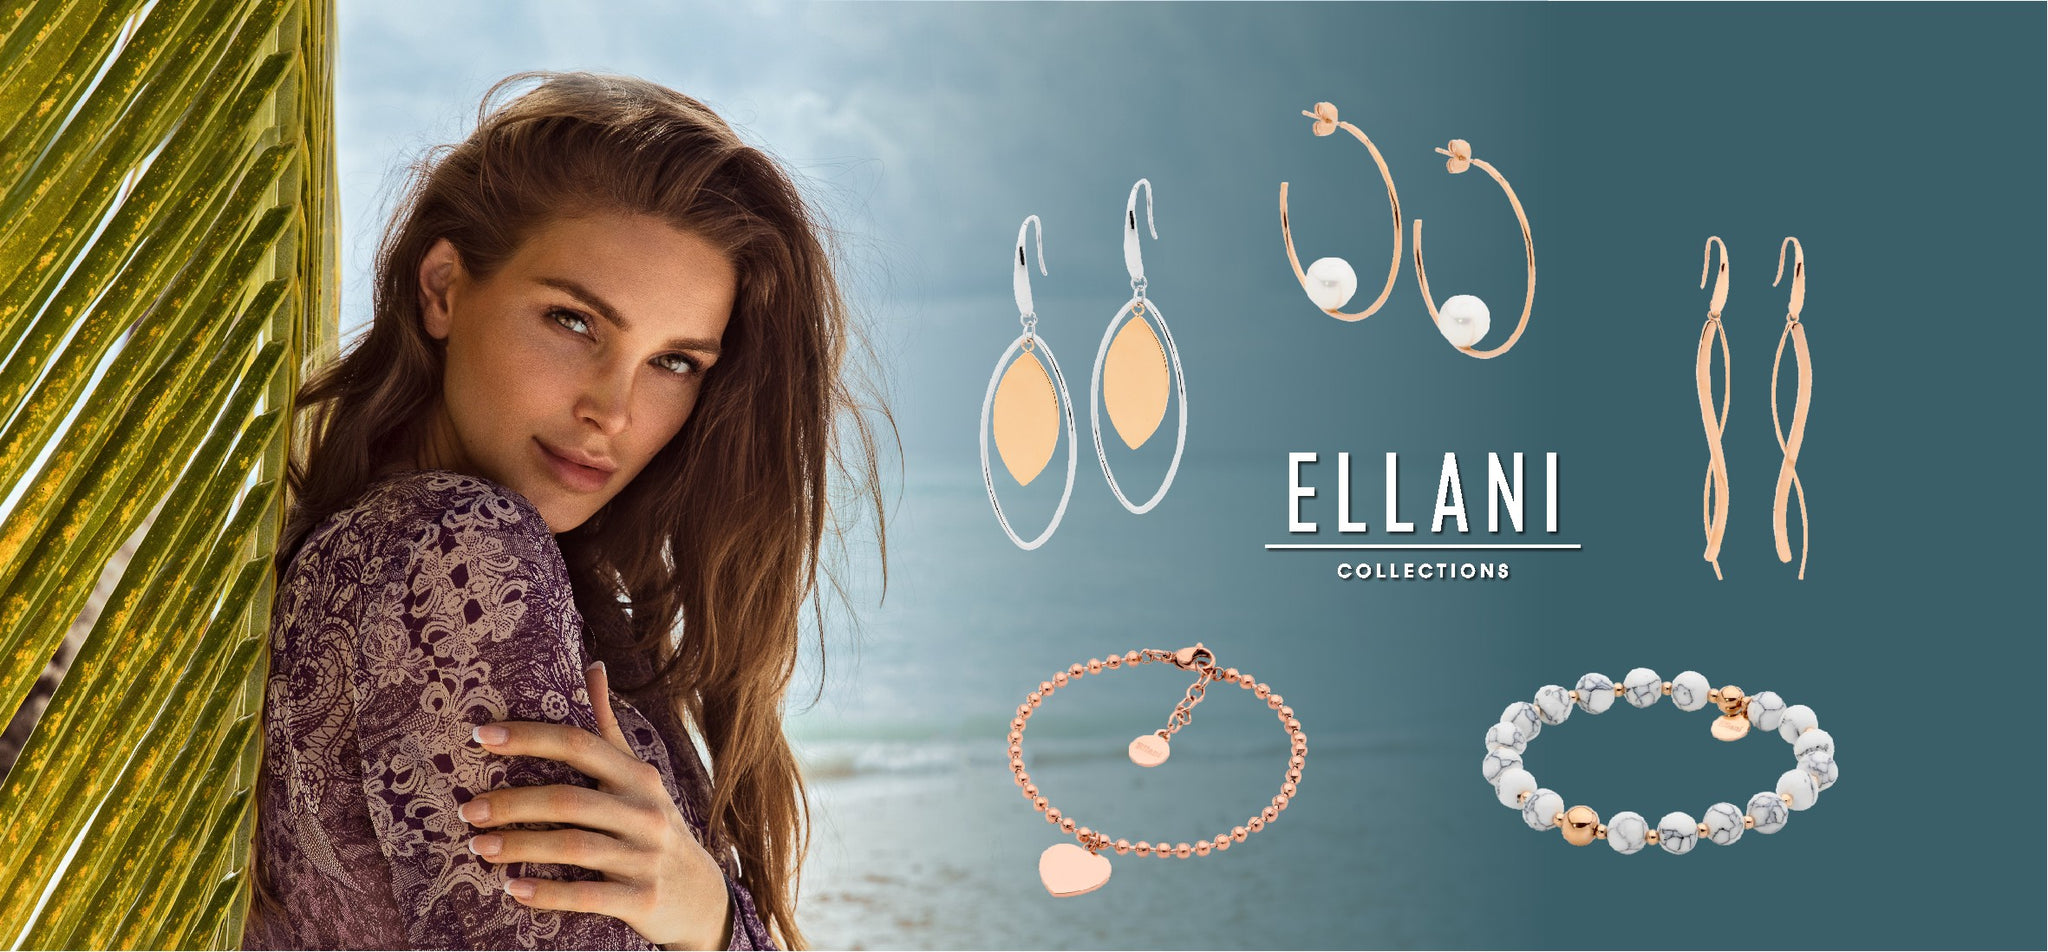 Ellani Collections Rings